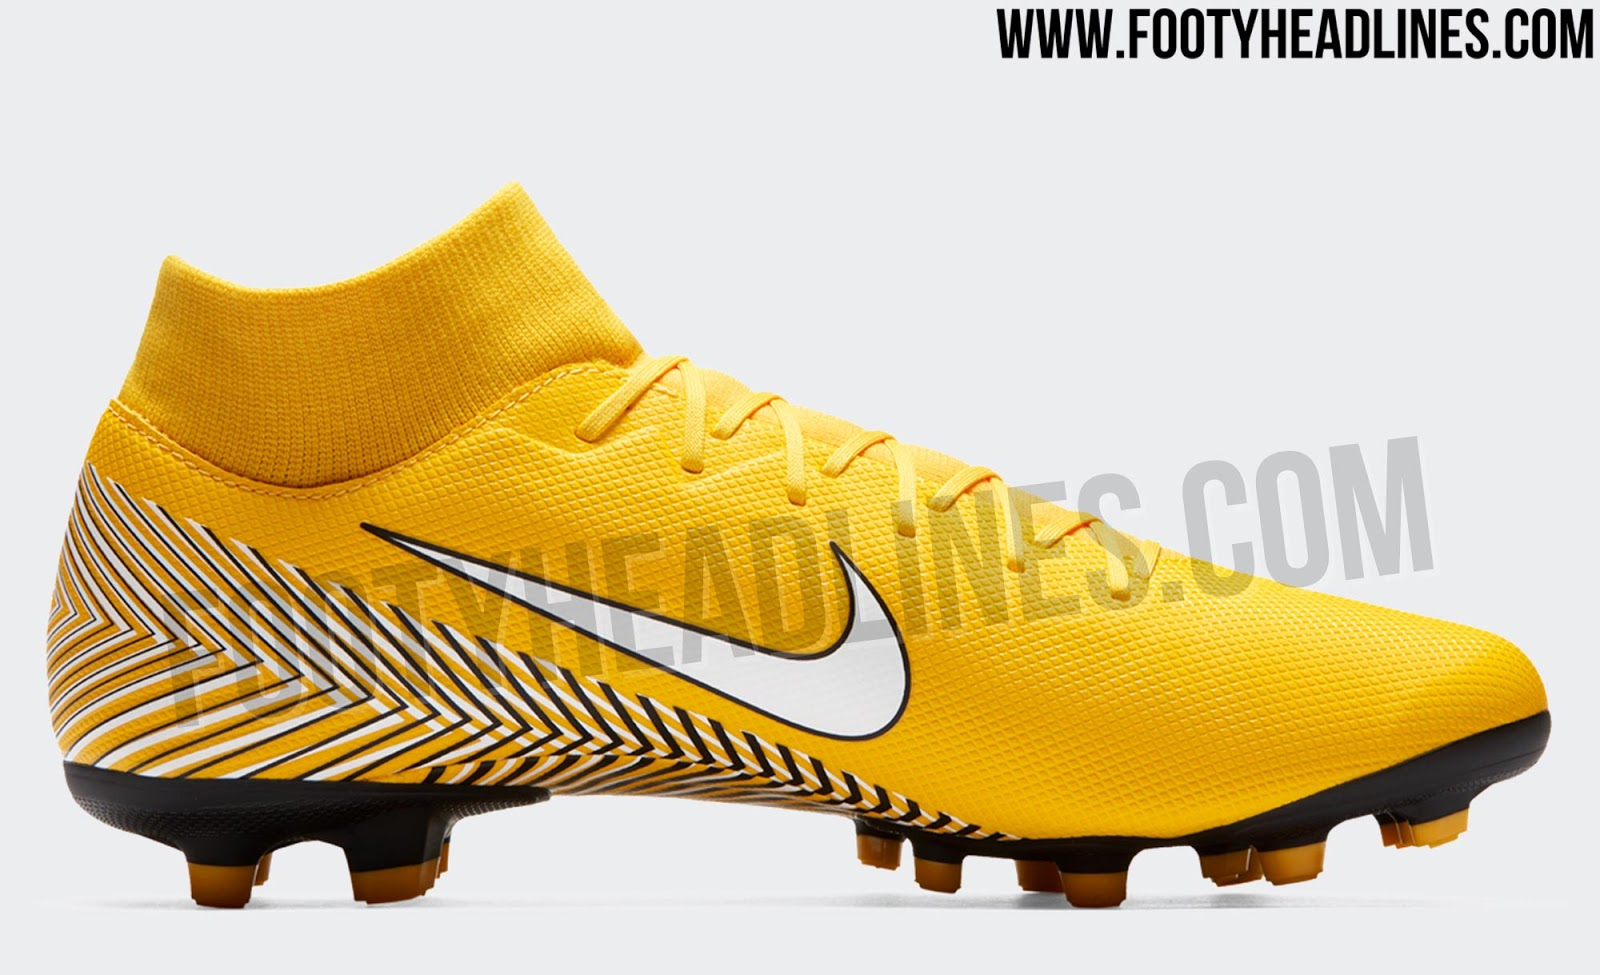 2018 world cup knockout stage boots amarillo nike